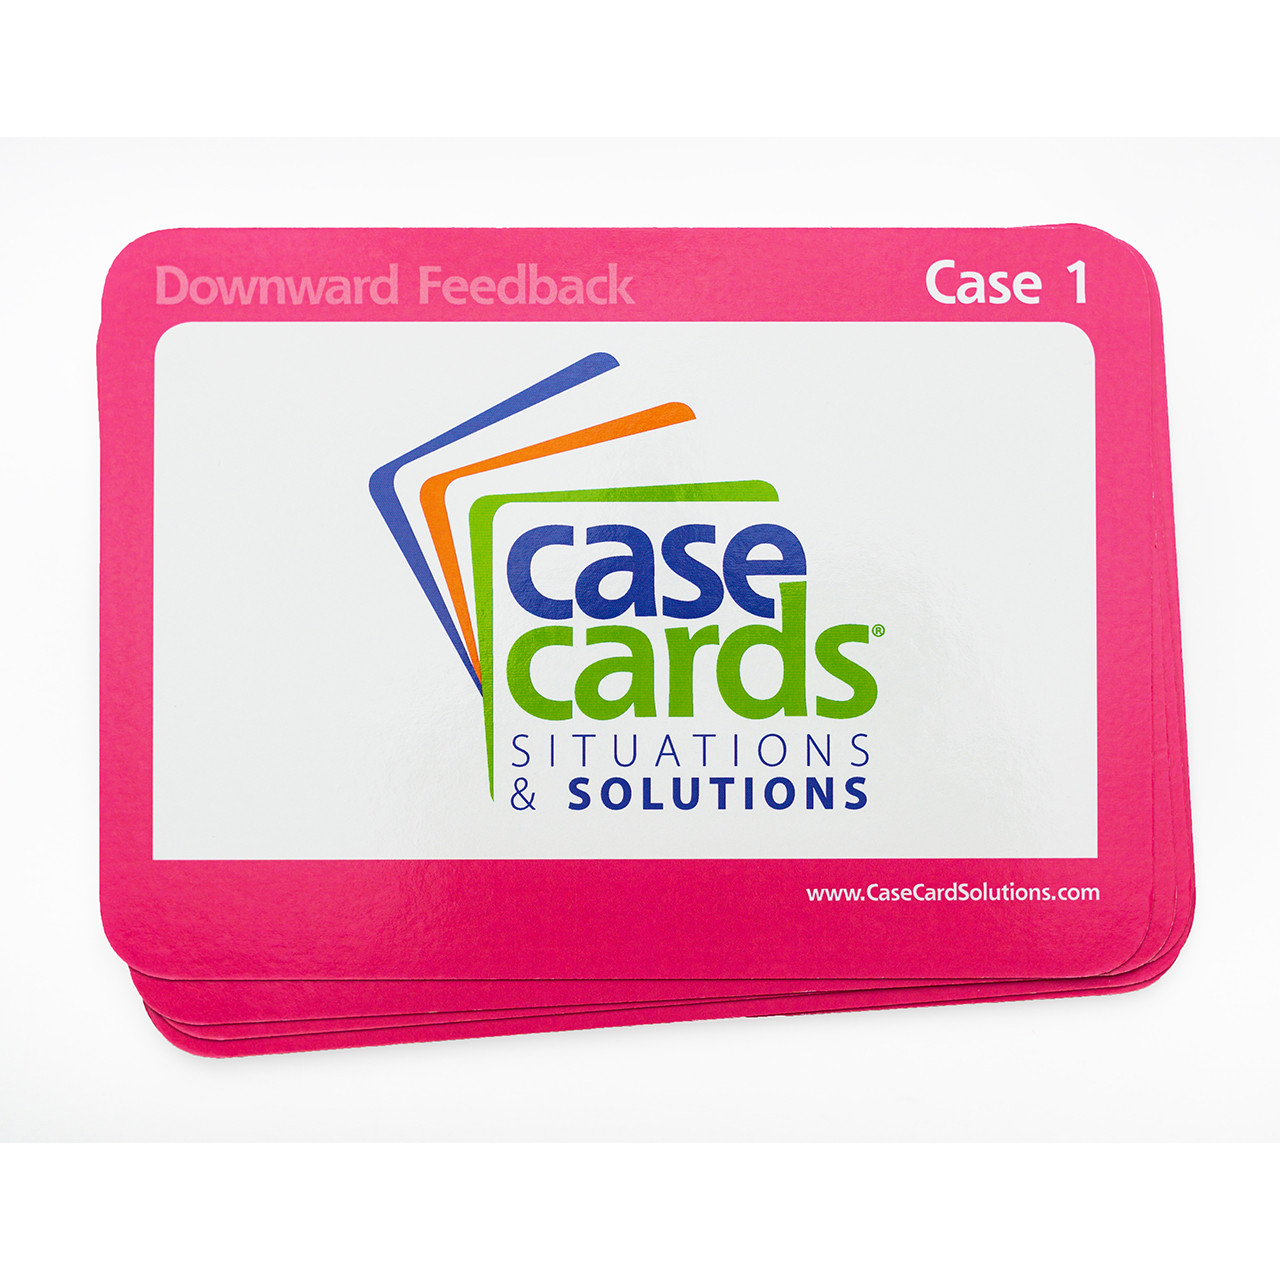 CaseCards - FEEDBACK Situations & Solutions Downward